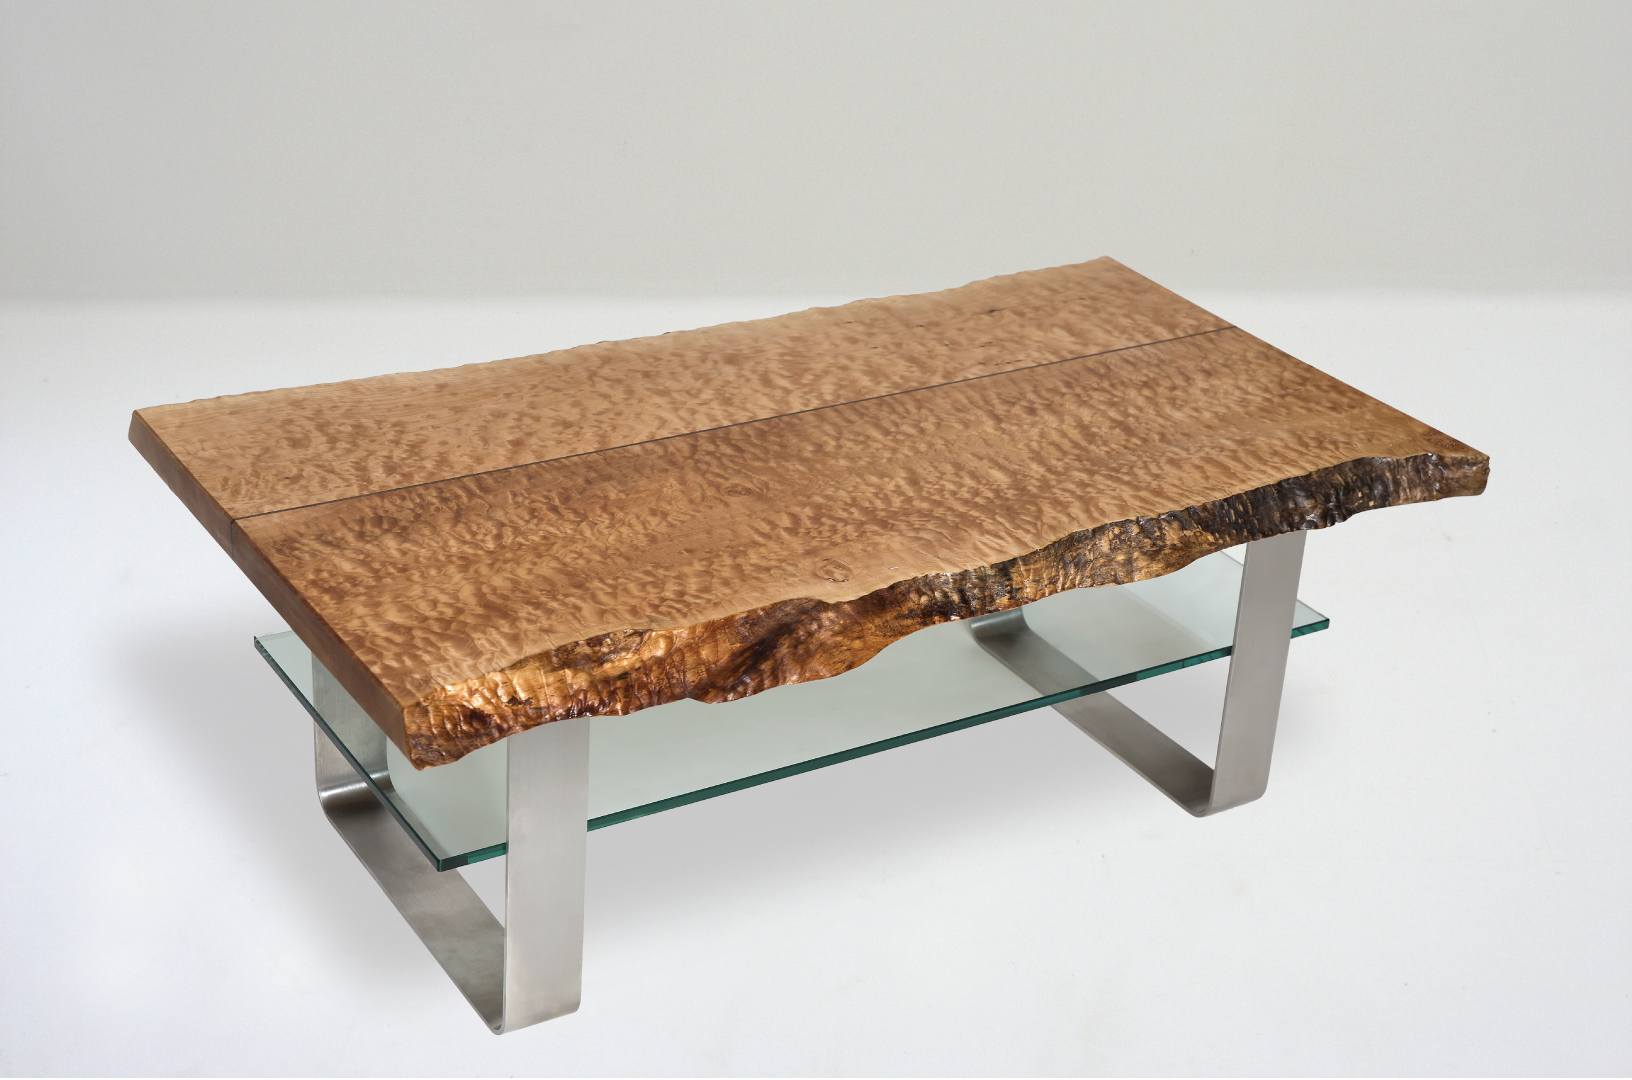 Mapleart custom wood furniture vancouver bcananuca for Coffee tables vancouver canada